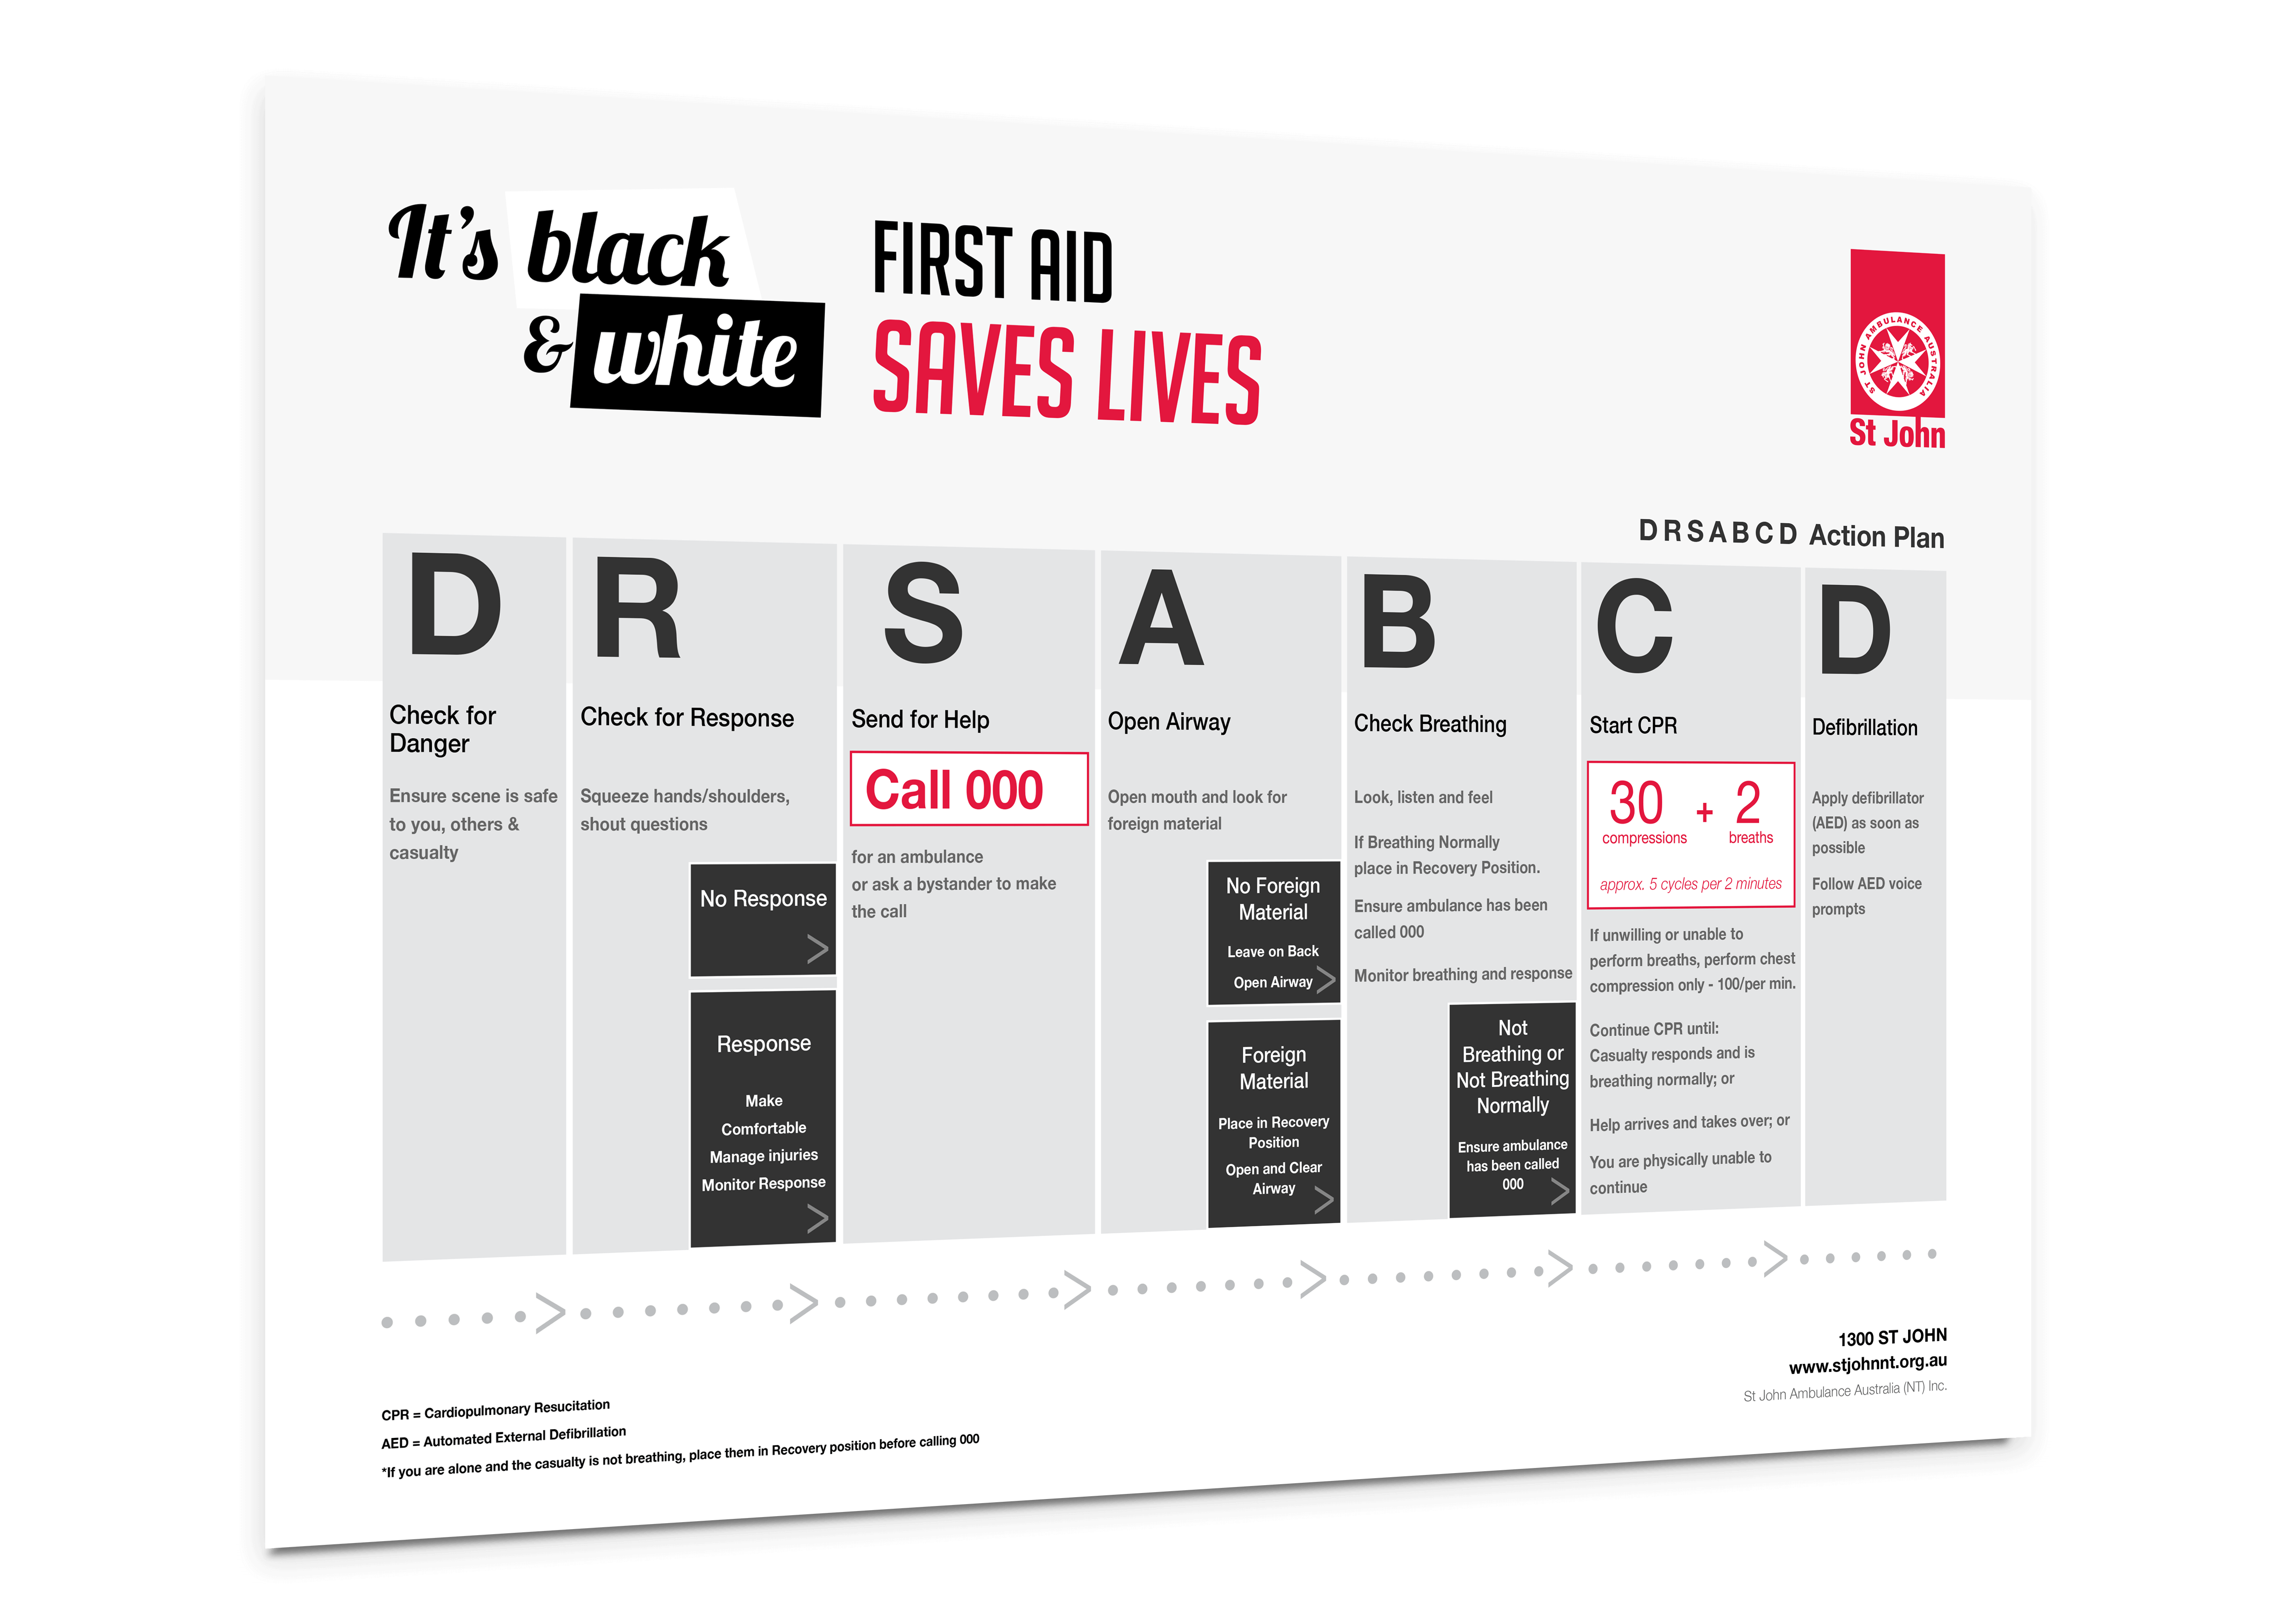 First Aid Saves Lives - DRSABCD Poster - St John Ambulance